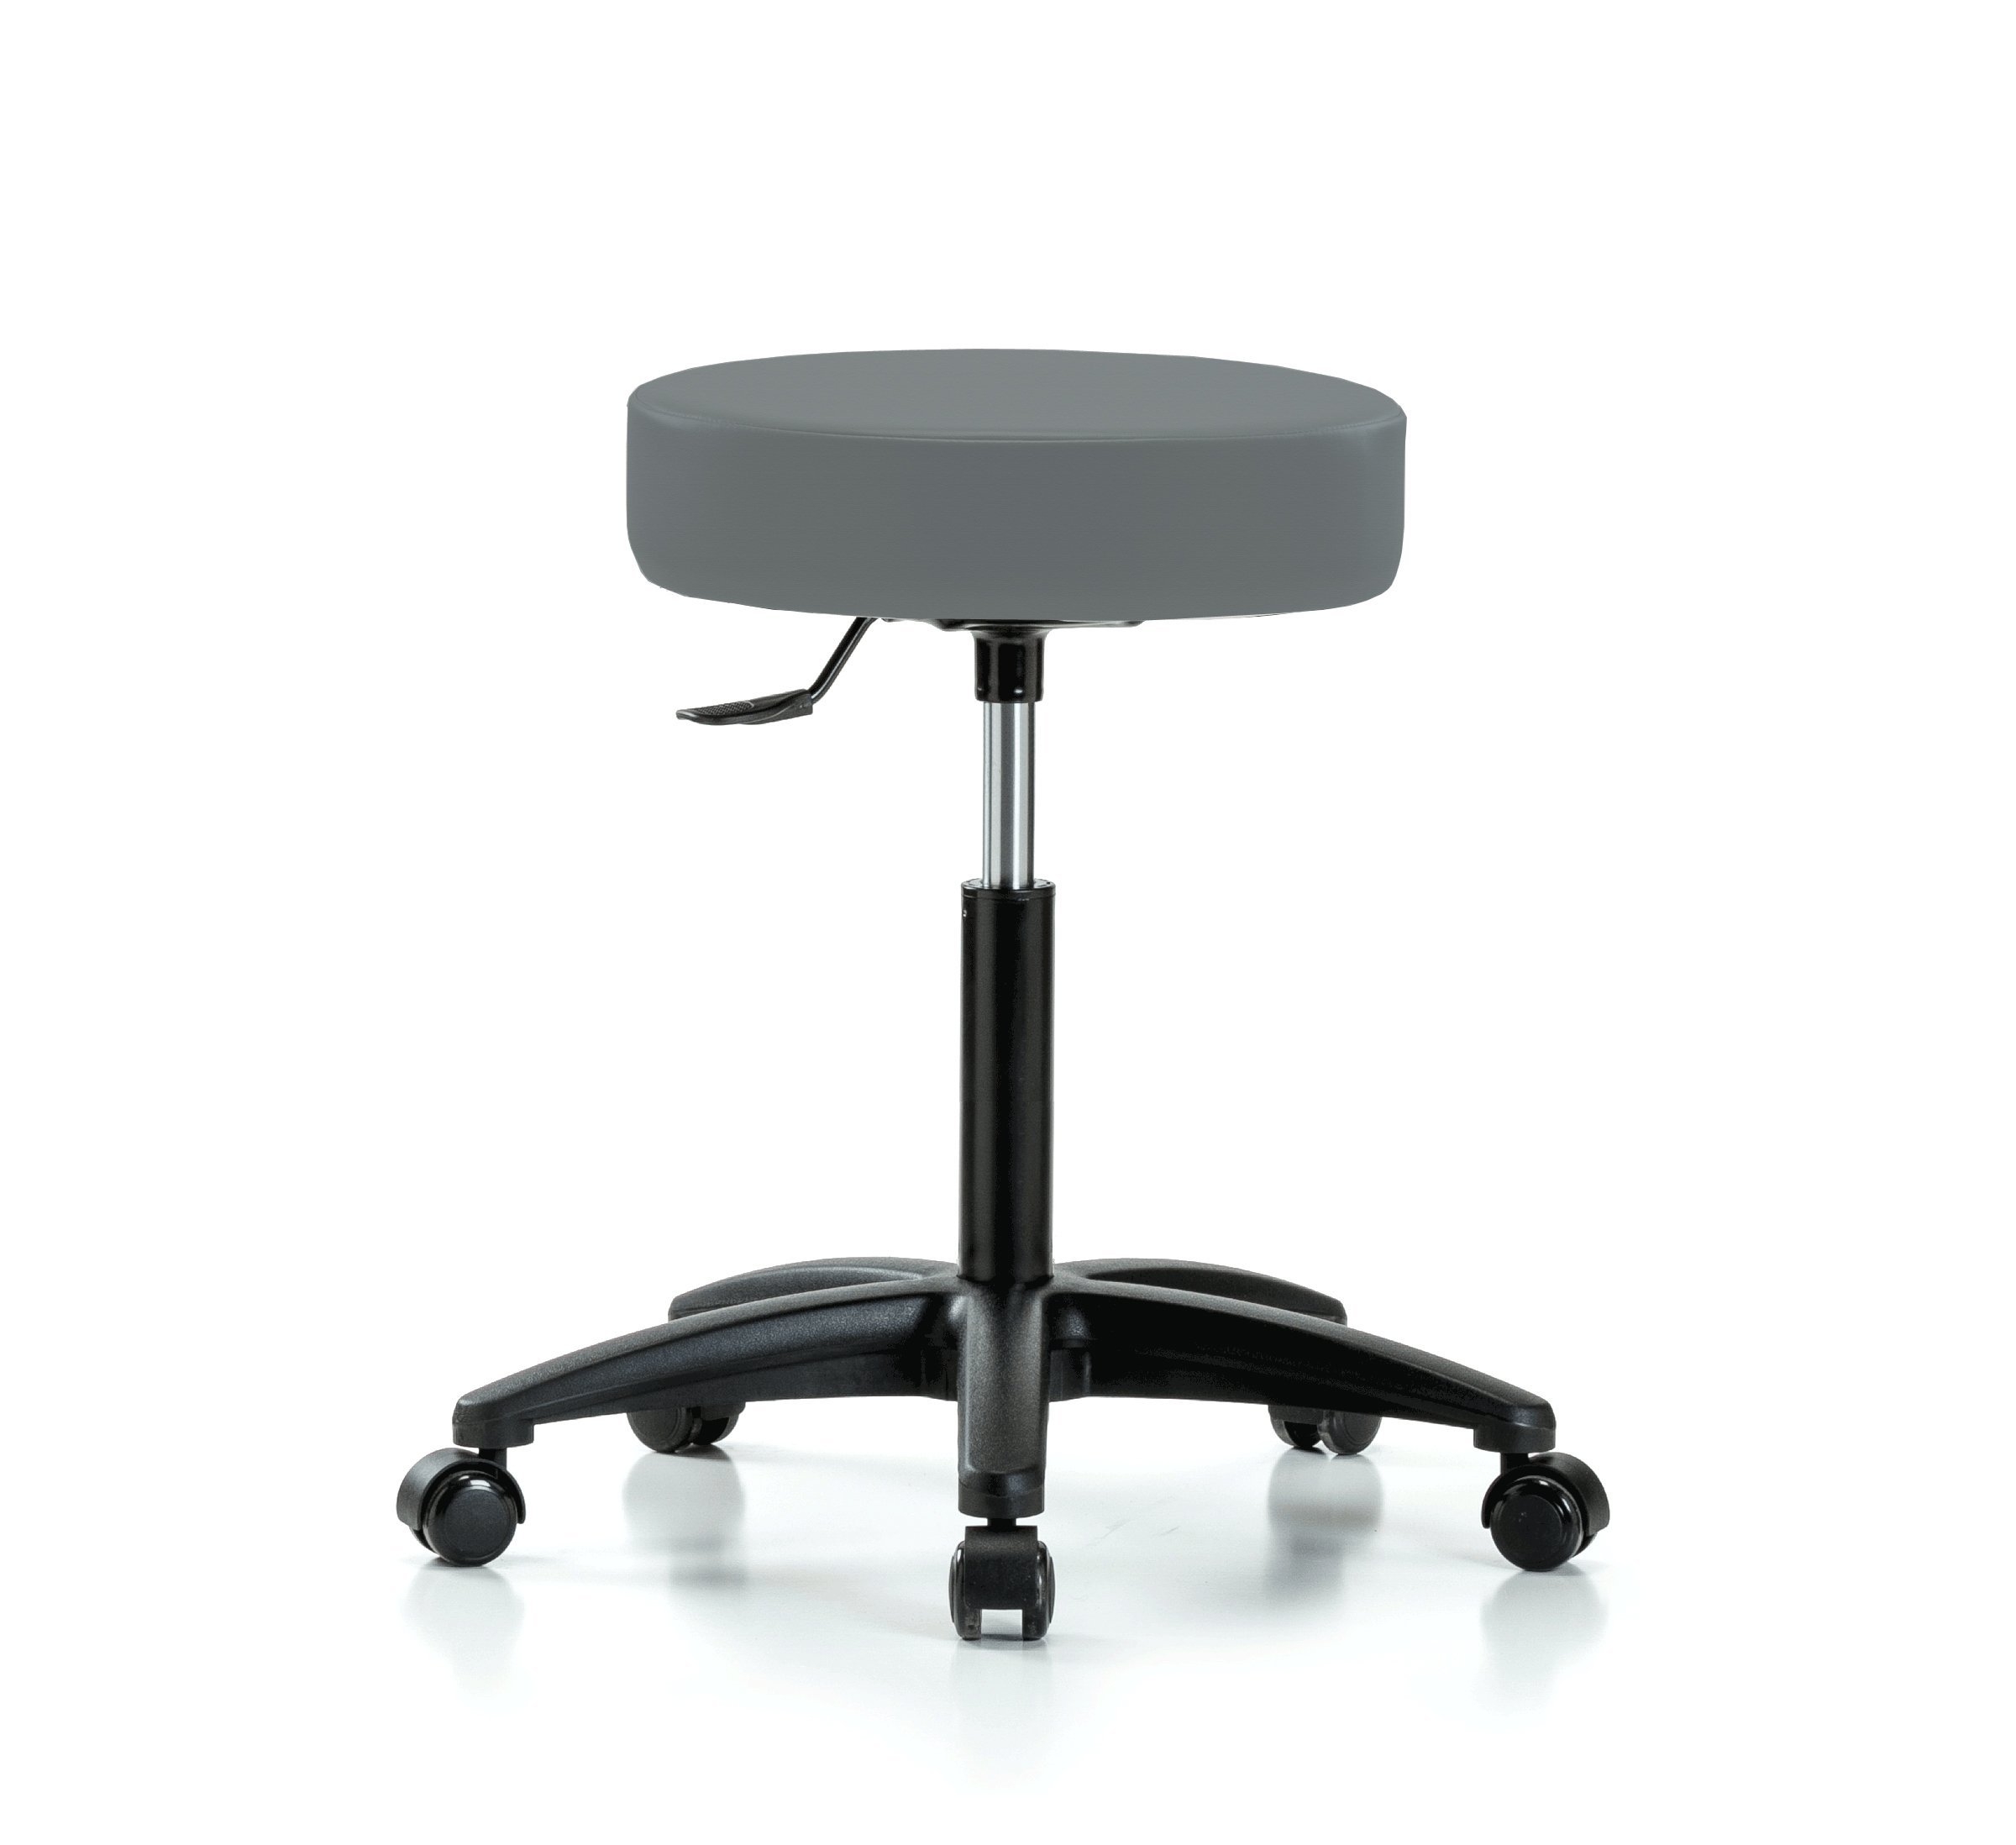 Perch Rolling Single Lever Height Adjustable Swivel Stool for Salon, Spa, Massage, Office, Home or Workshop 20'' - 25.8'' (Soft Floor Casters/Cinder Fabric)